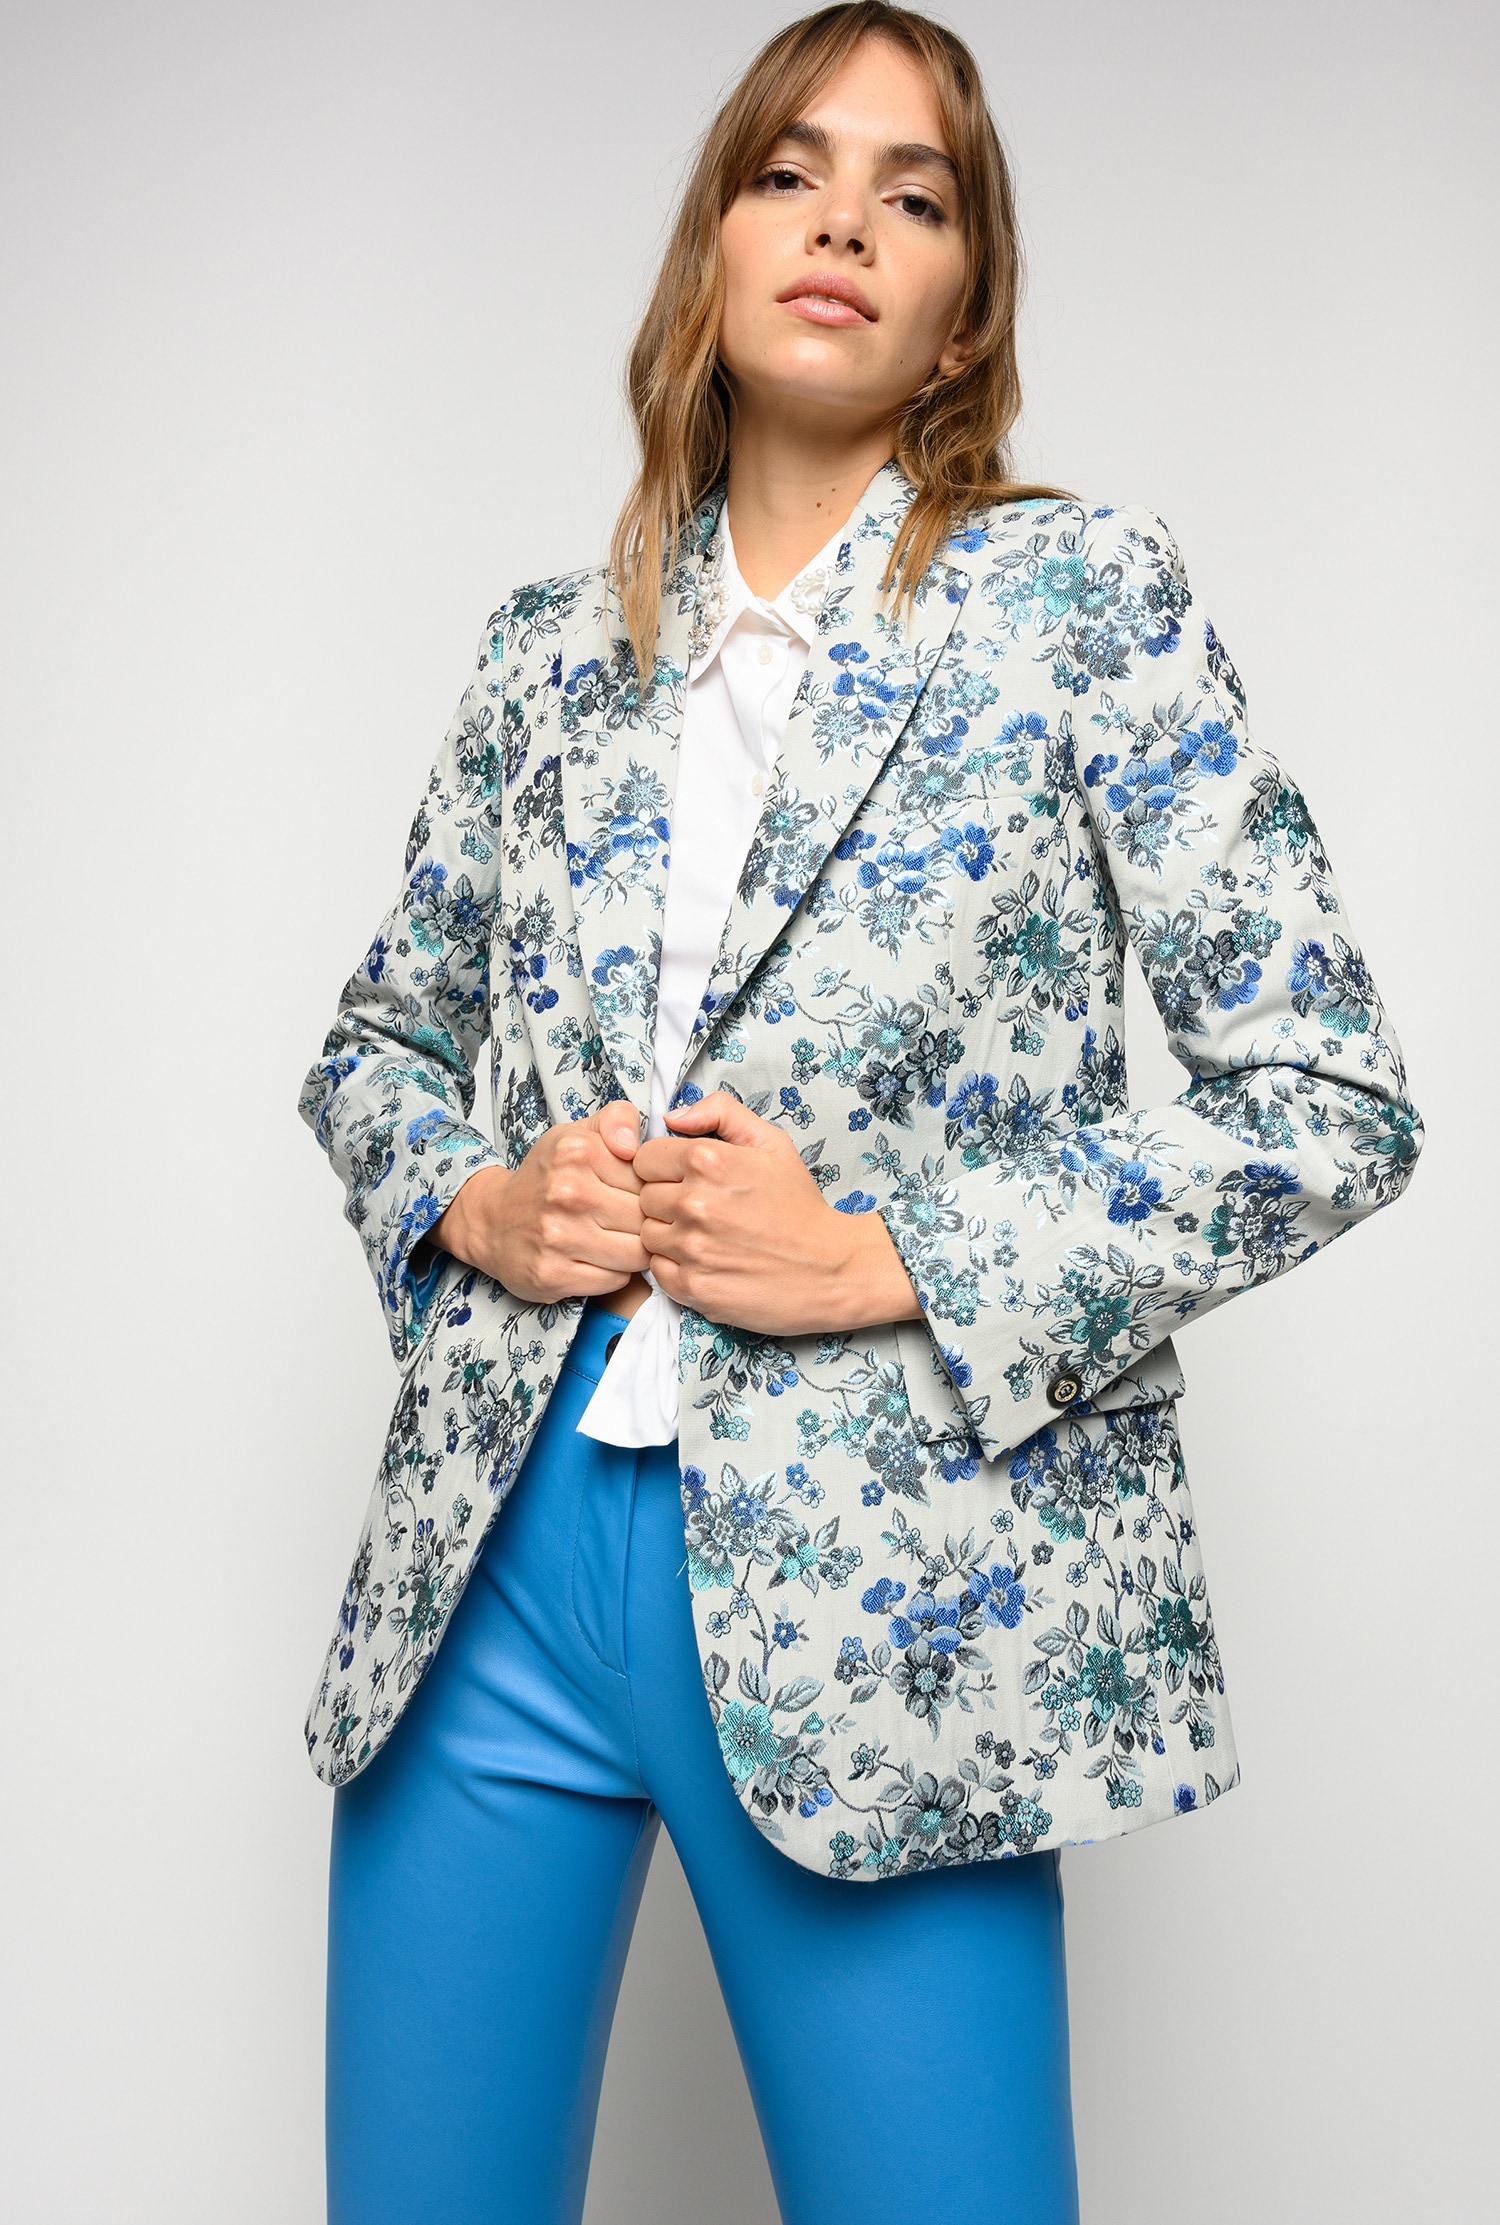 SHOPPING ON LINE PINKO BLAZER IN BROCCATO FLOREALE ESTROSO NEW COLLECTION WOMEN'S SPRING SUMMER 2021